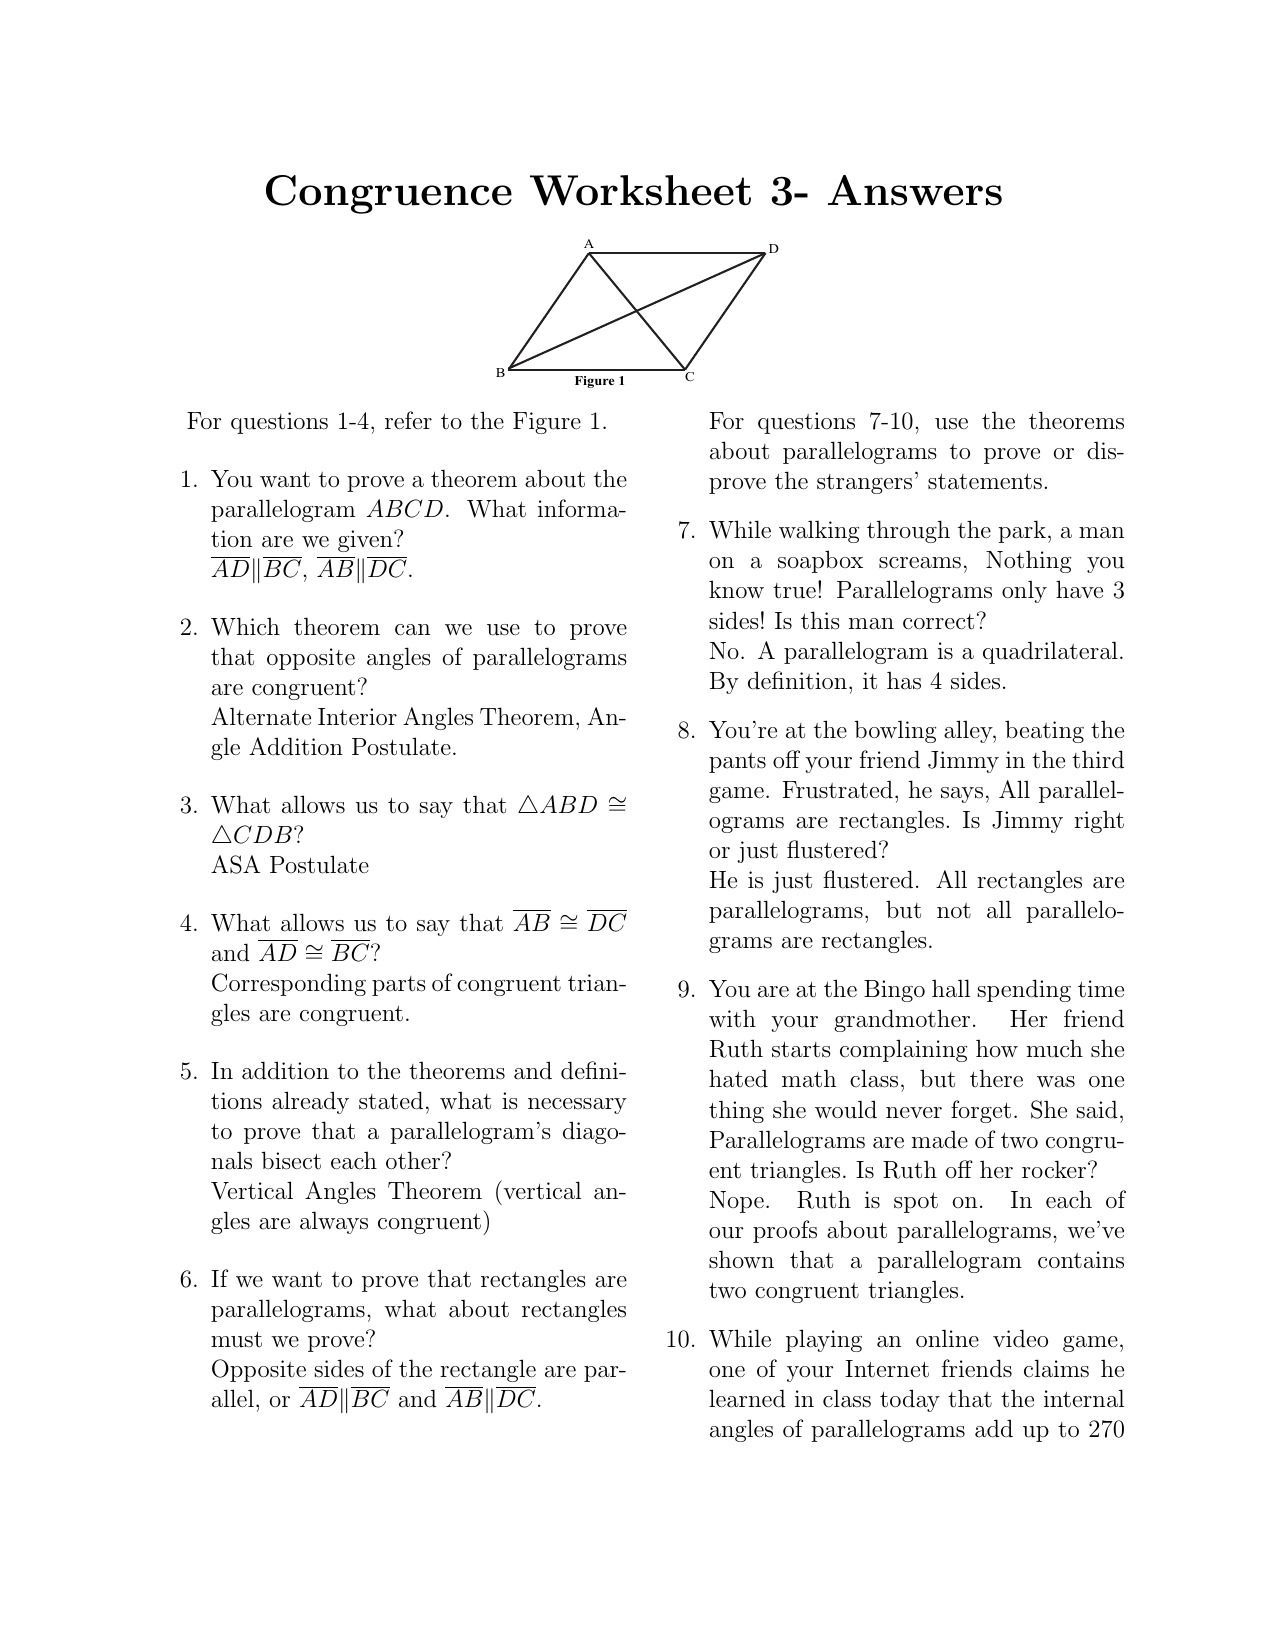 Parallelogram Proofs Worksheet With Answers Fresh Proving